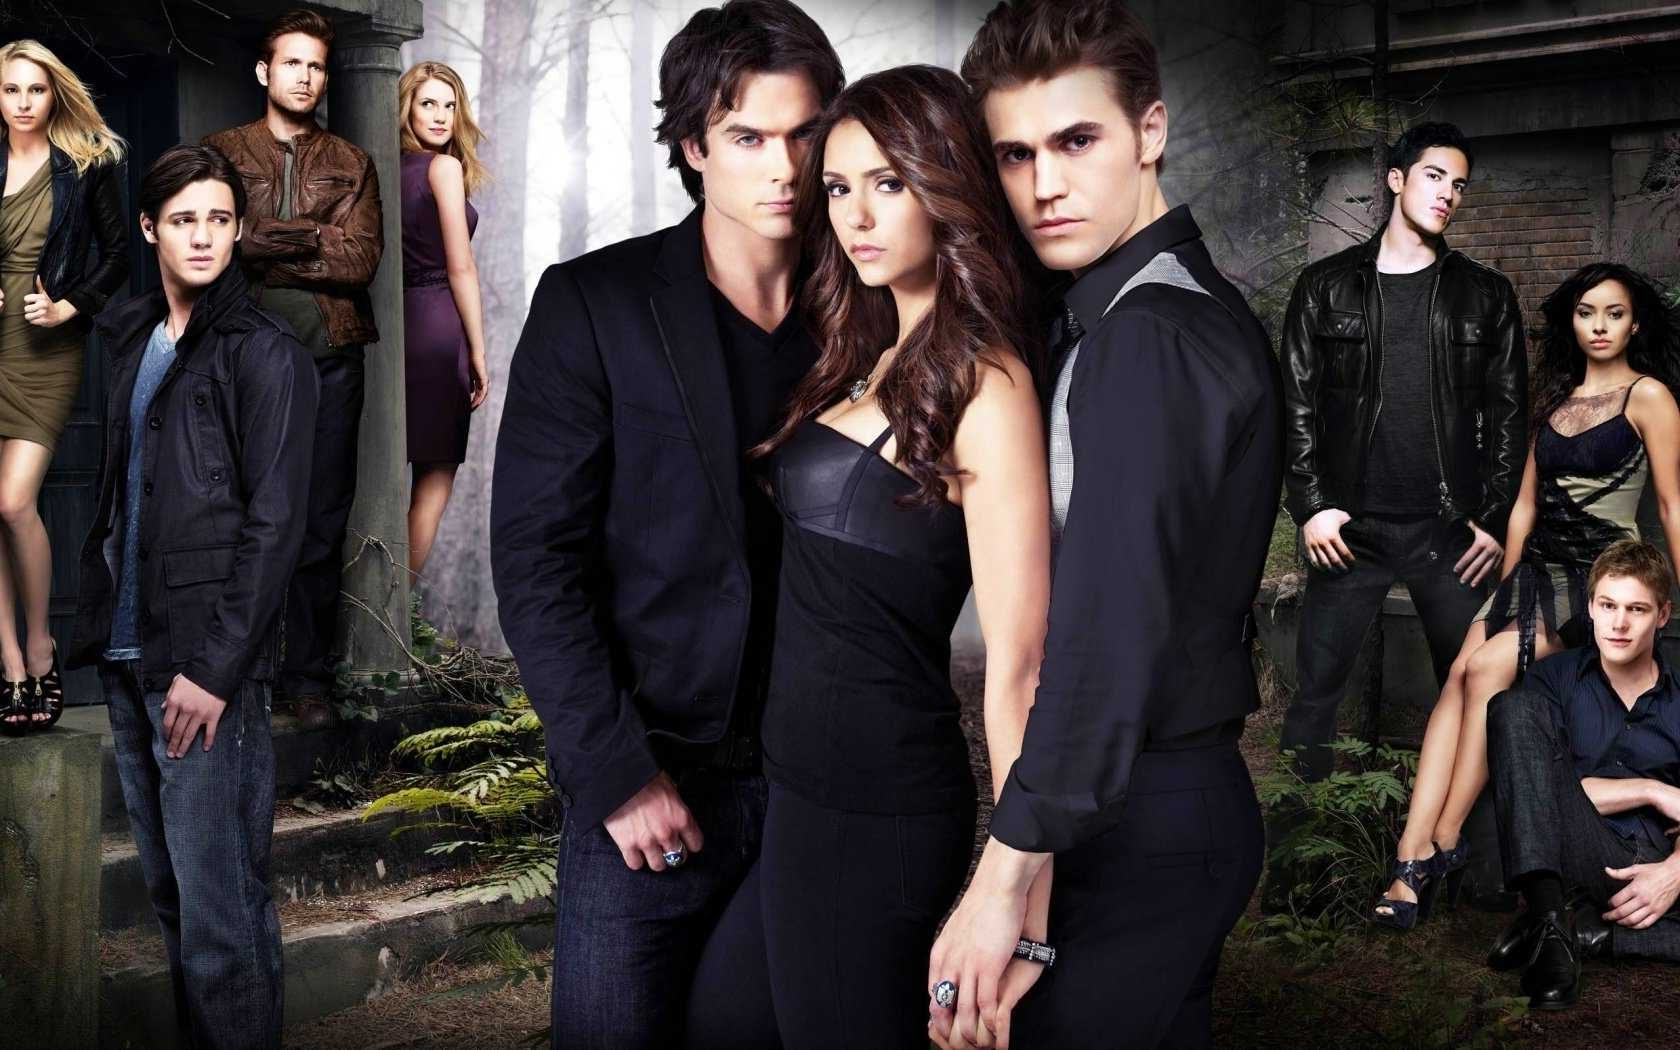 Vampire Diaries Wallpaper Nawpic